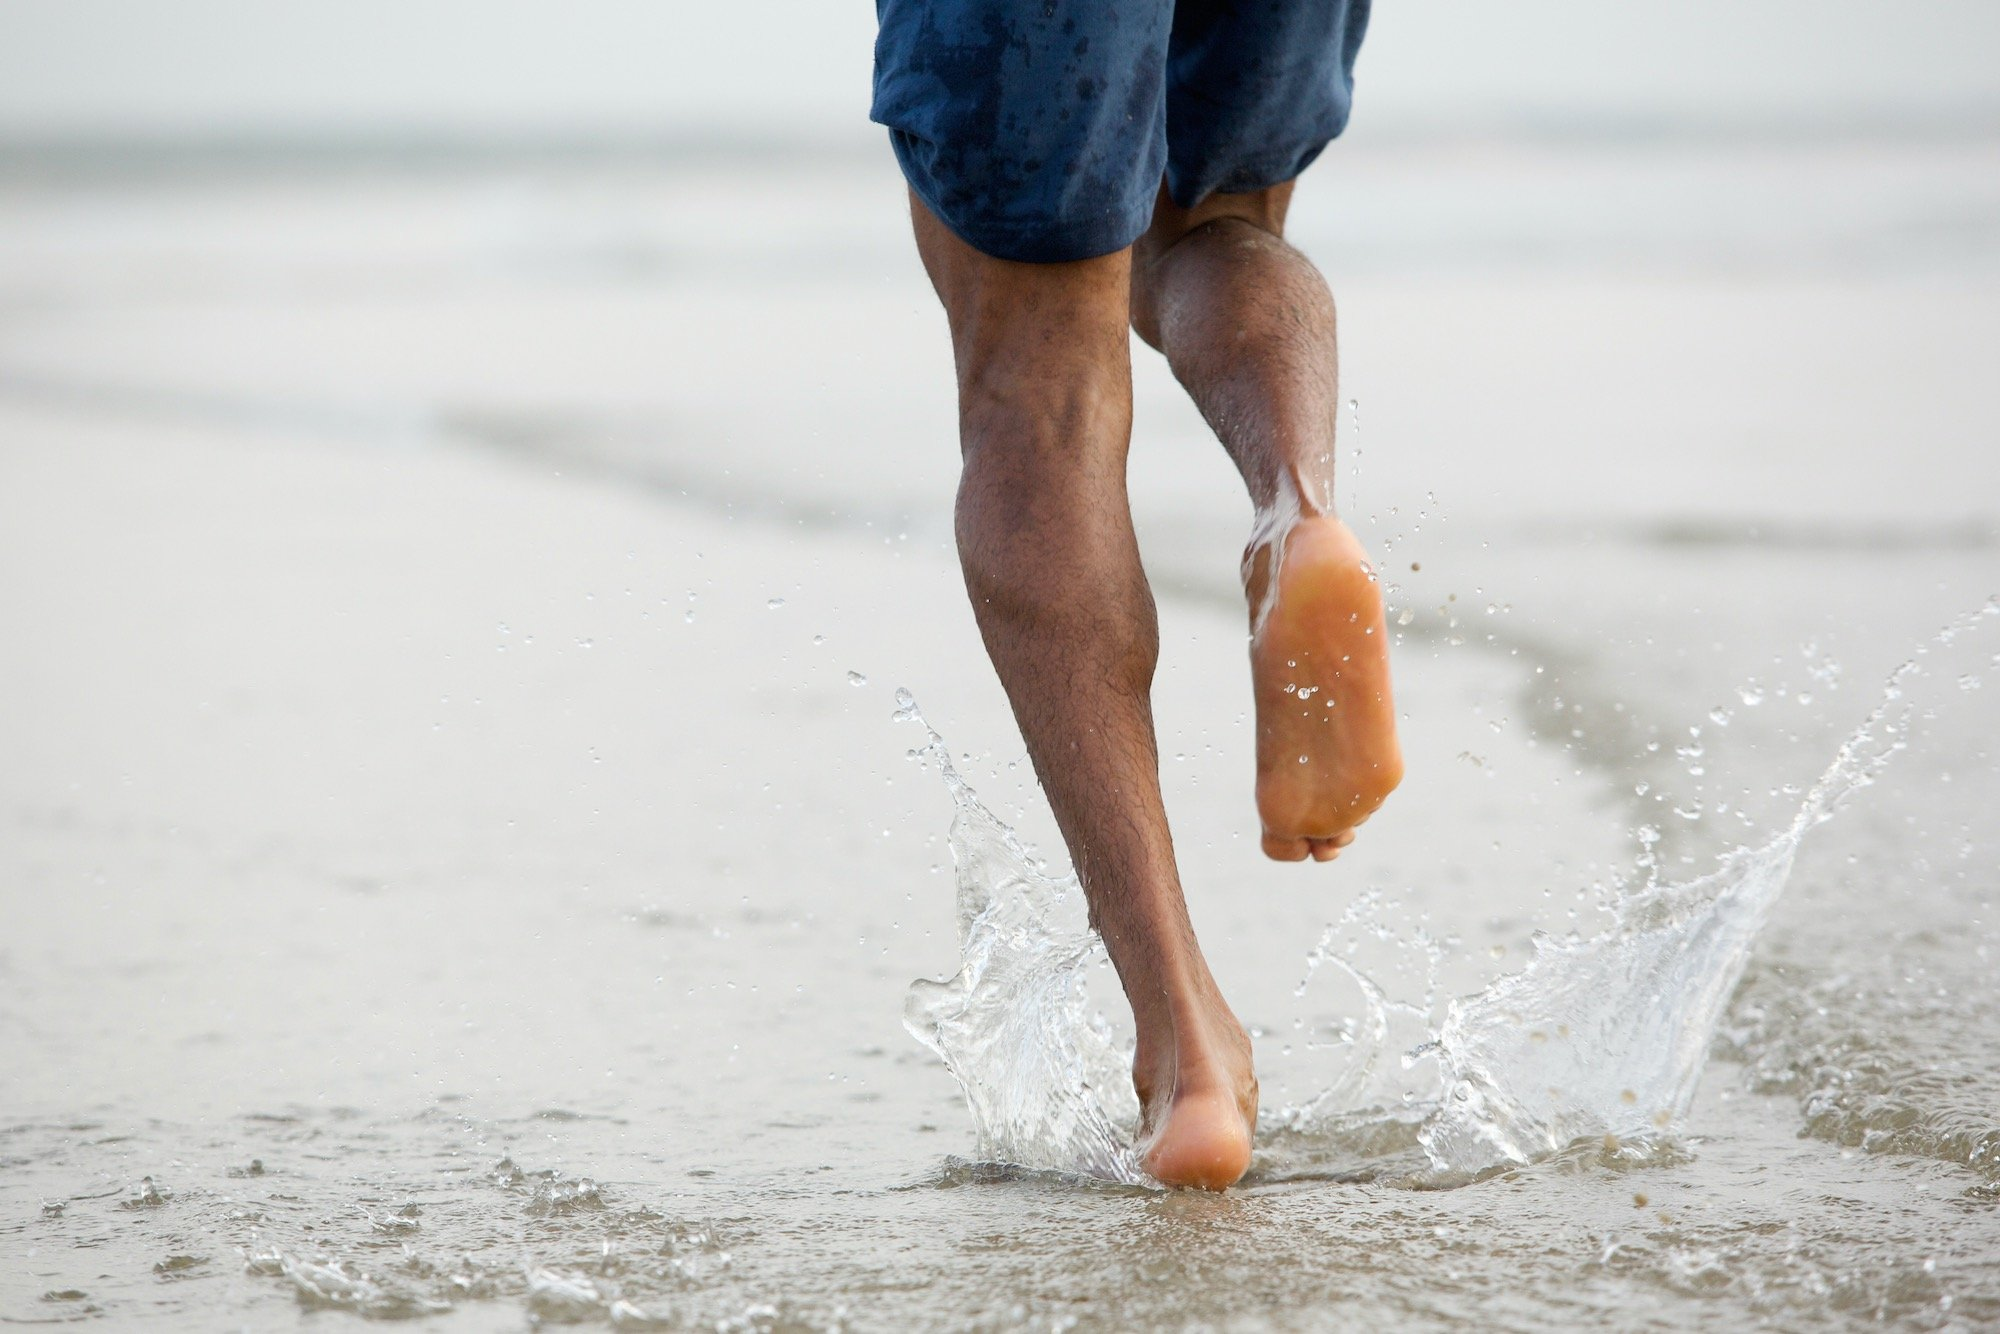 Man Running on Beach to Relieve Foot Pain